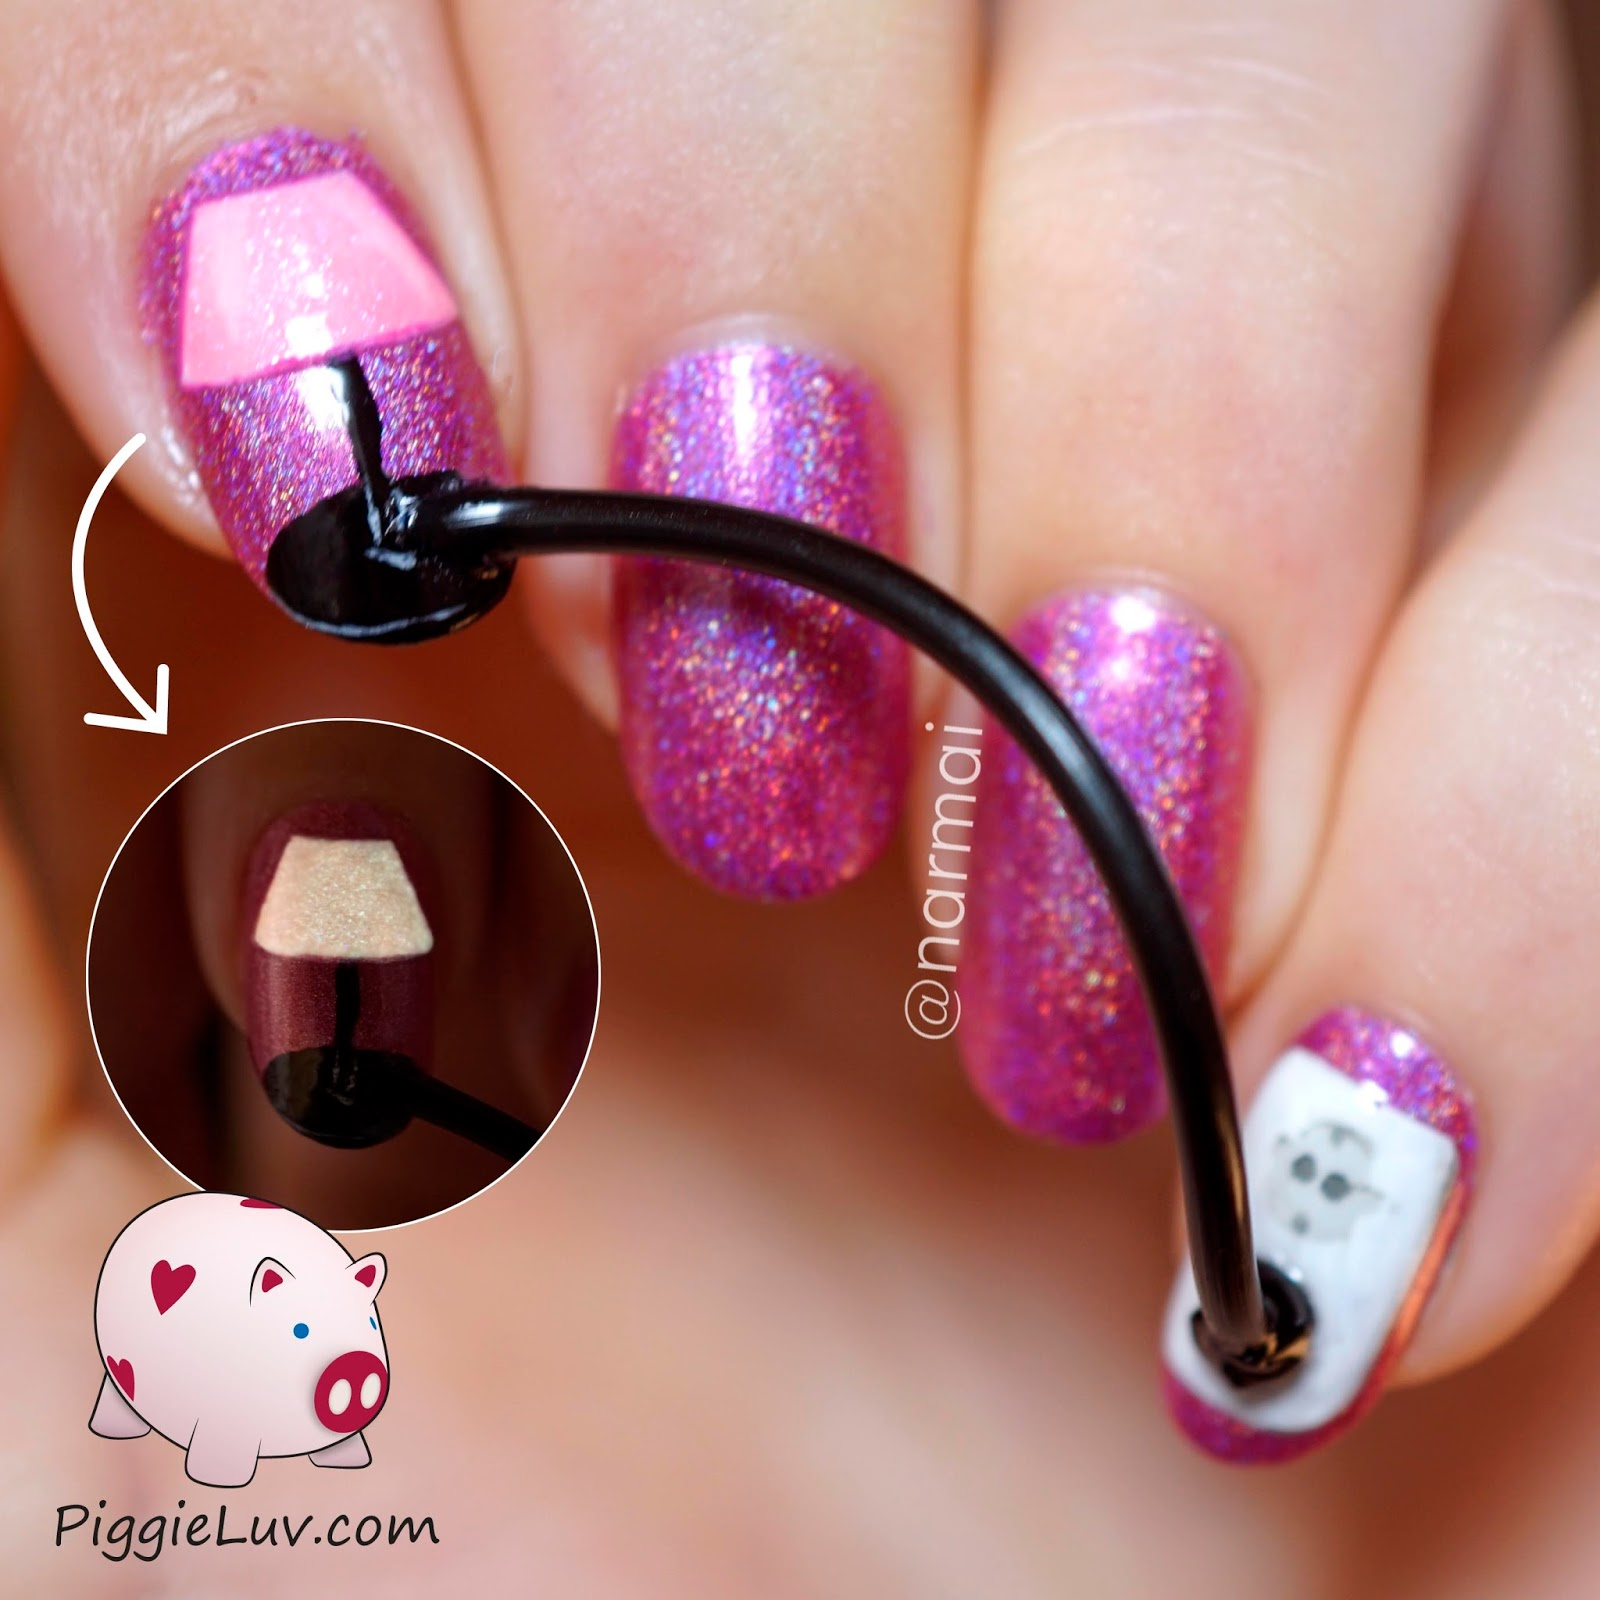 Pics Of Nail Art: PiggieLuv: Plugged In Nail Art